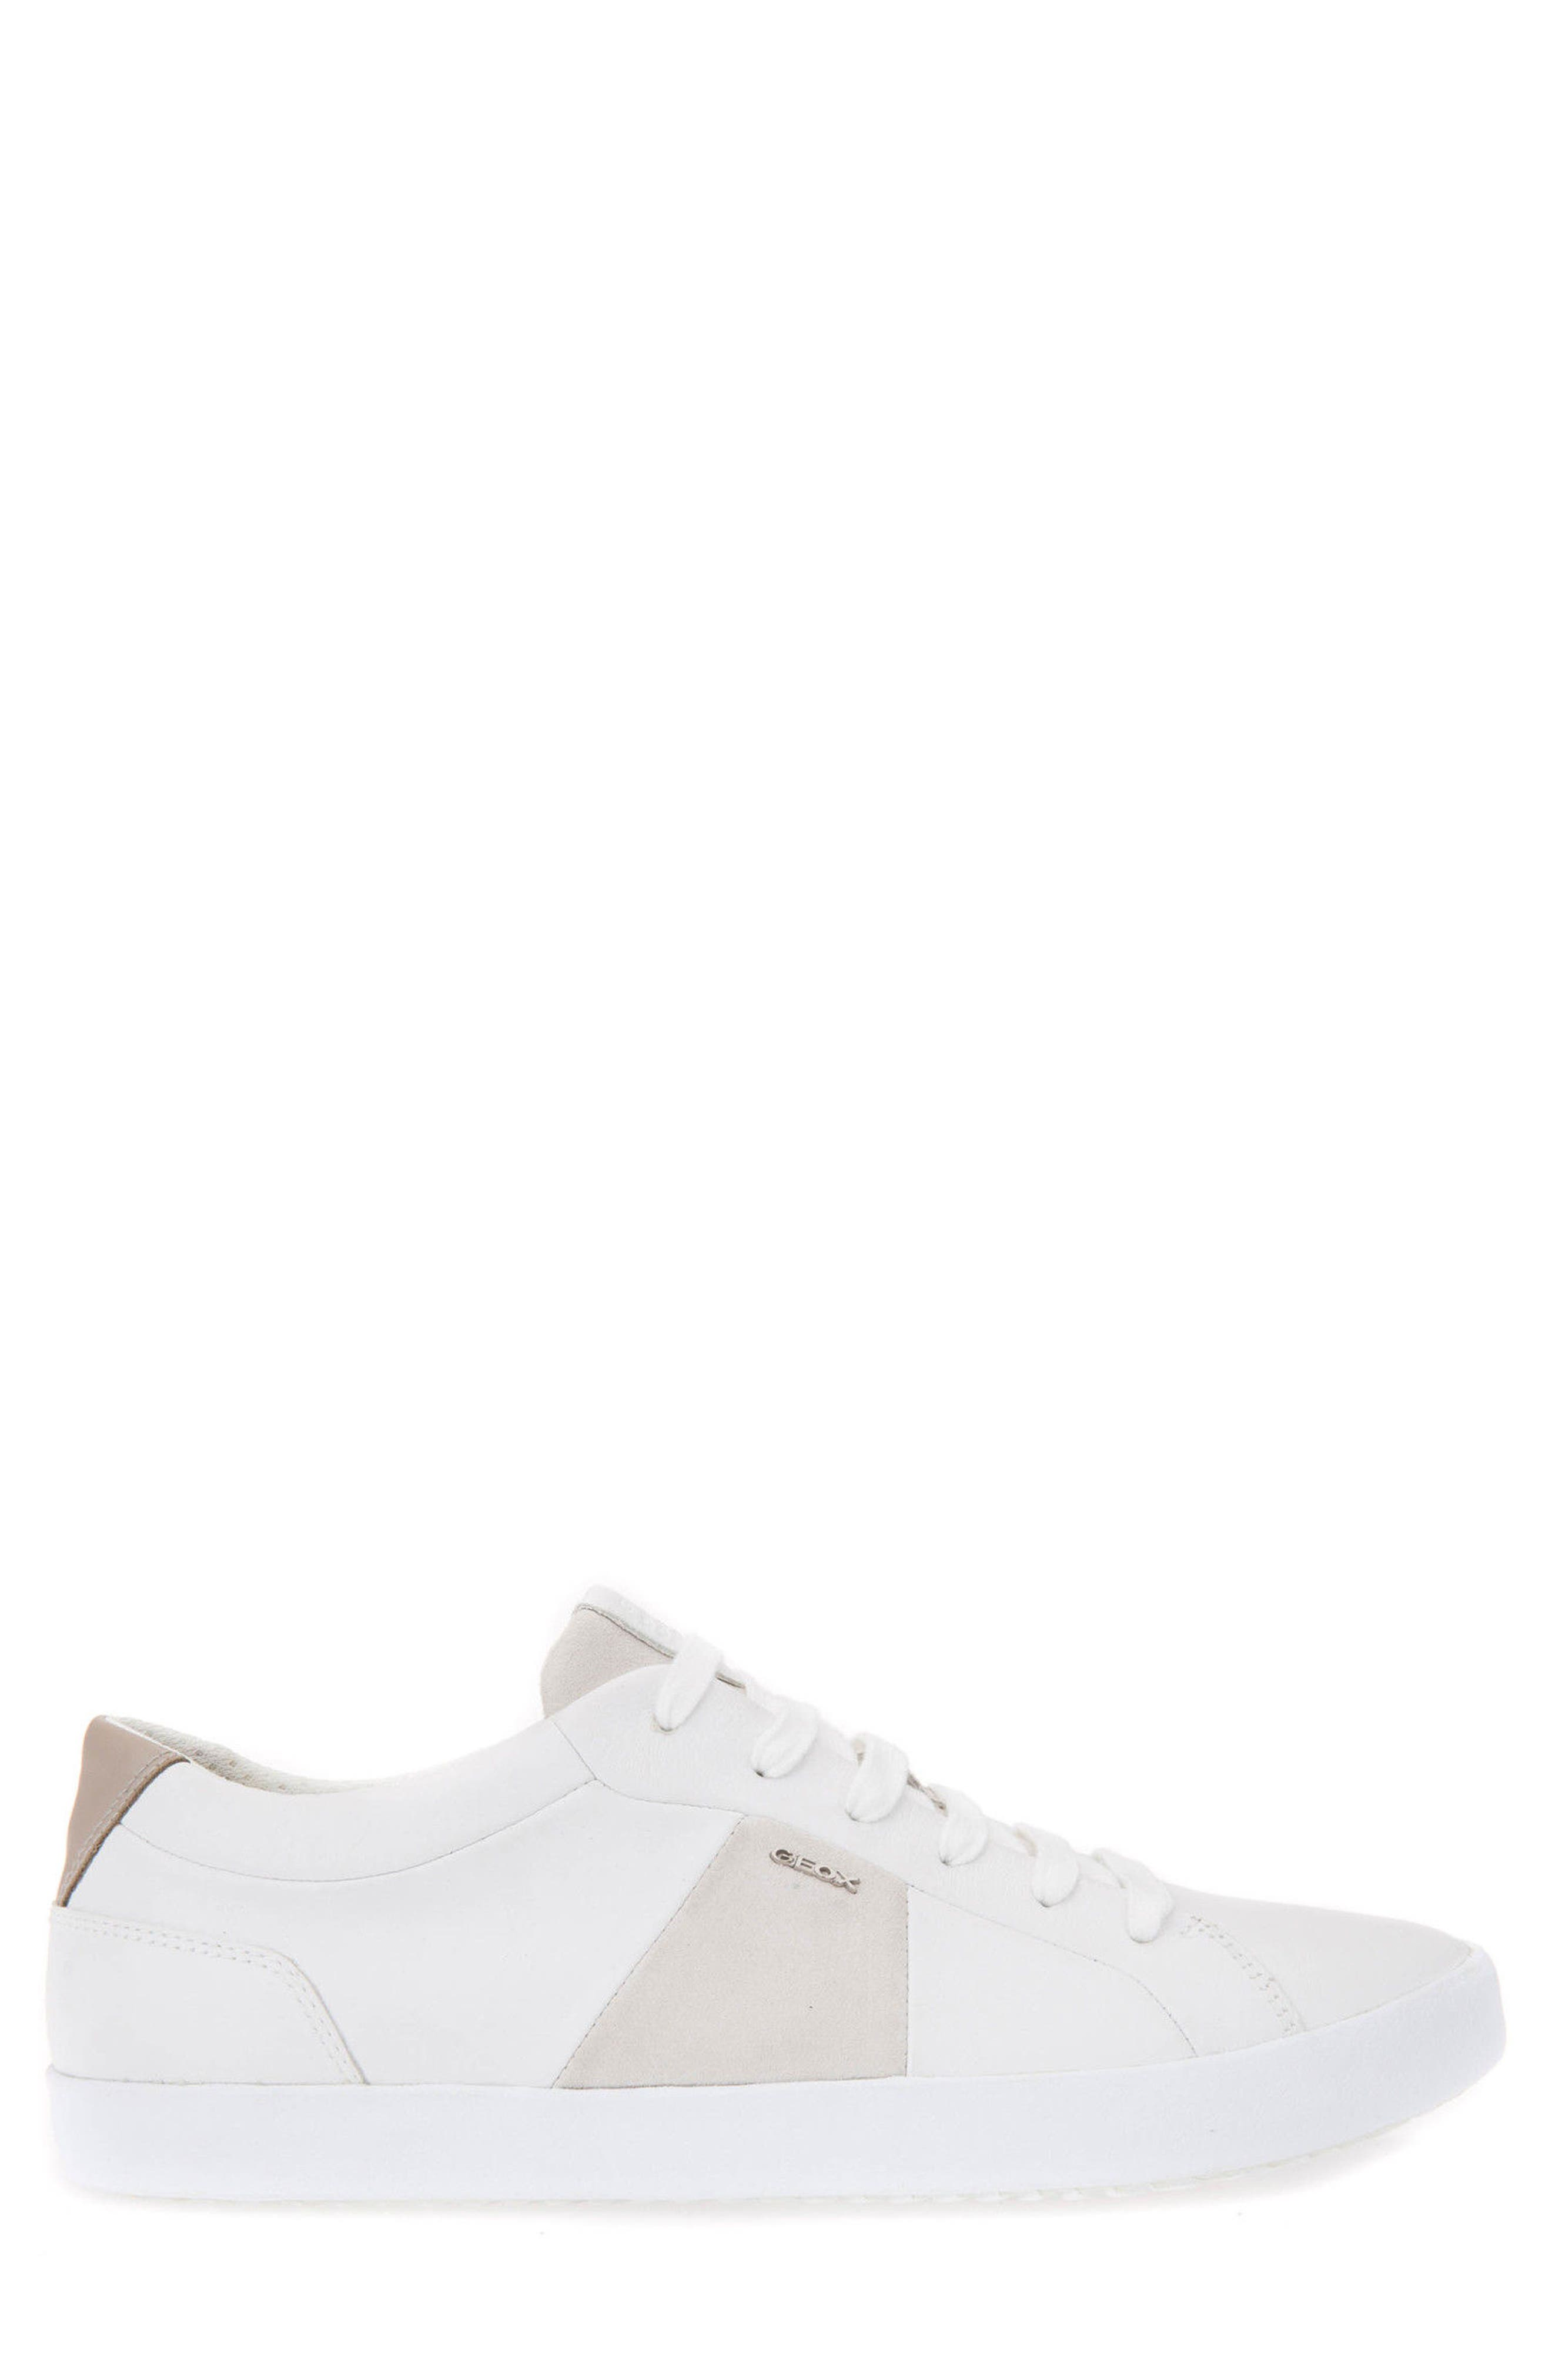 Smart 78 Sneaker,                             Alternate thumbnail 3, color,                             White/ Papyrus Leather